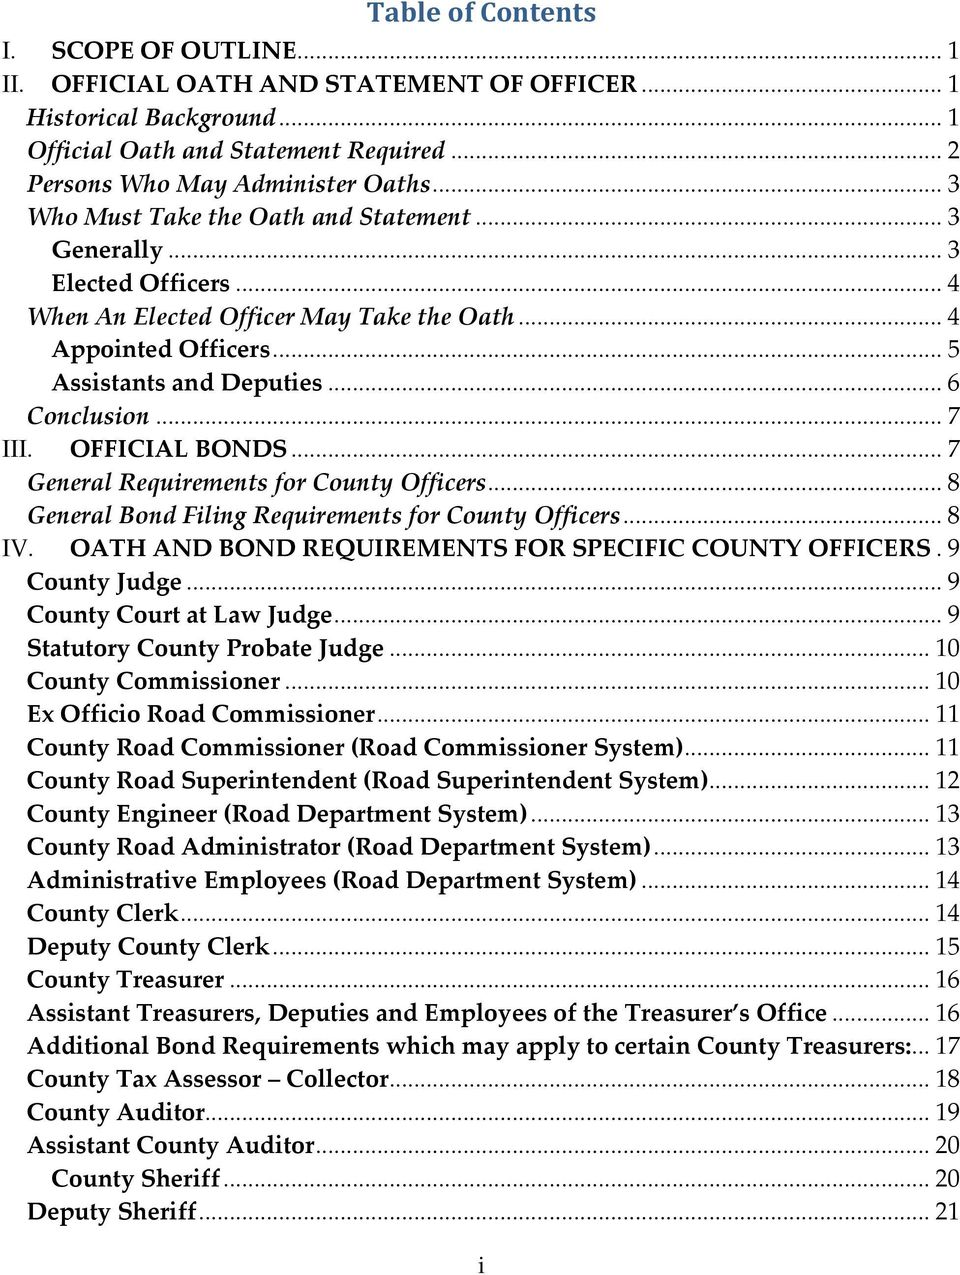 .. 7 III. OFFICIAL BONDS... 7 General Requirements for County Officers... 8 General Bond Filing Requirements for County Officers... 8 IV. OATH AND BOND REQUIREMENTS FOR SPECIFIC COUNTY OFFICERS.